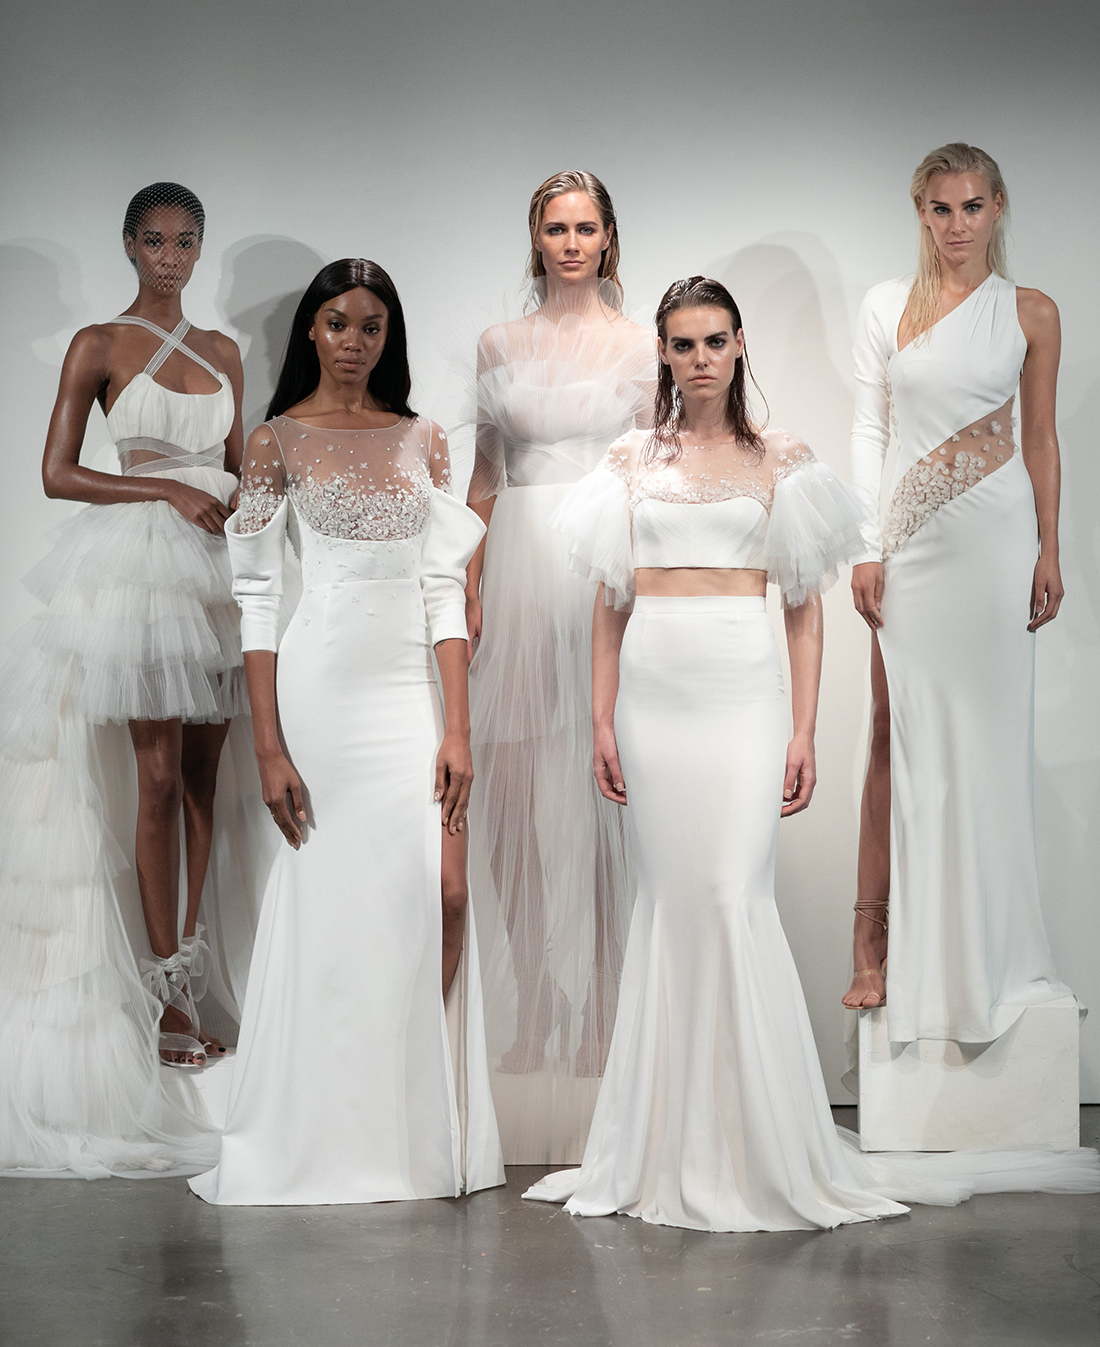 rime arodaky fall 2019 five models in dresses from collection